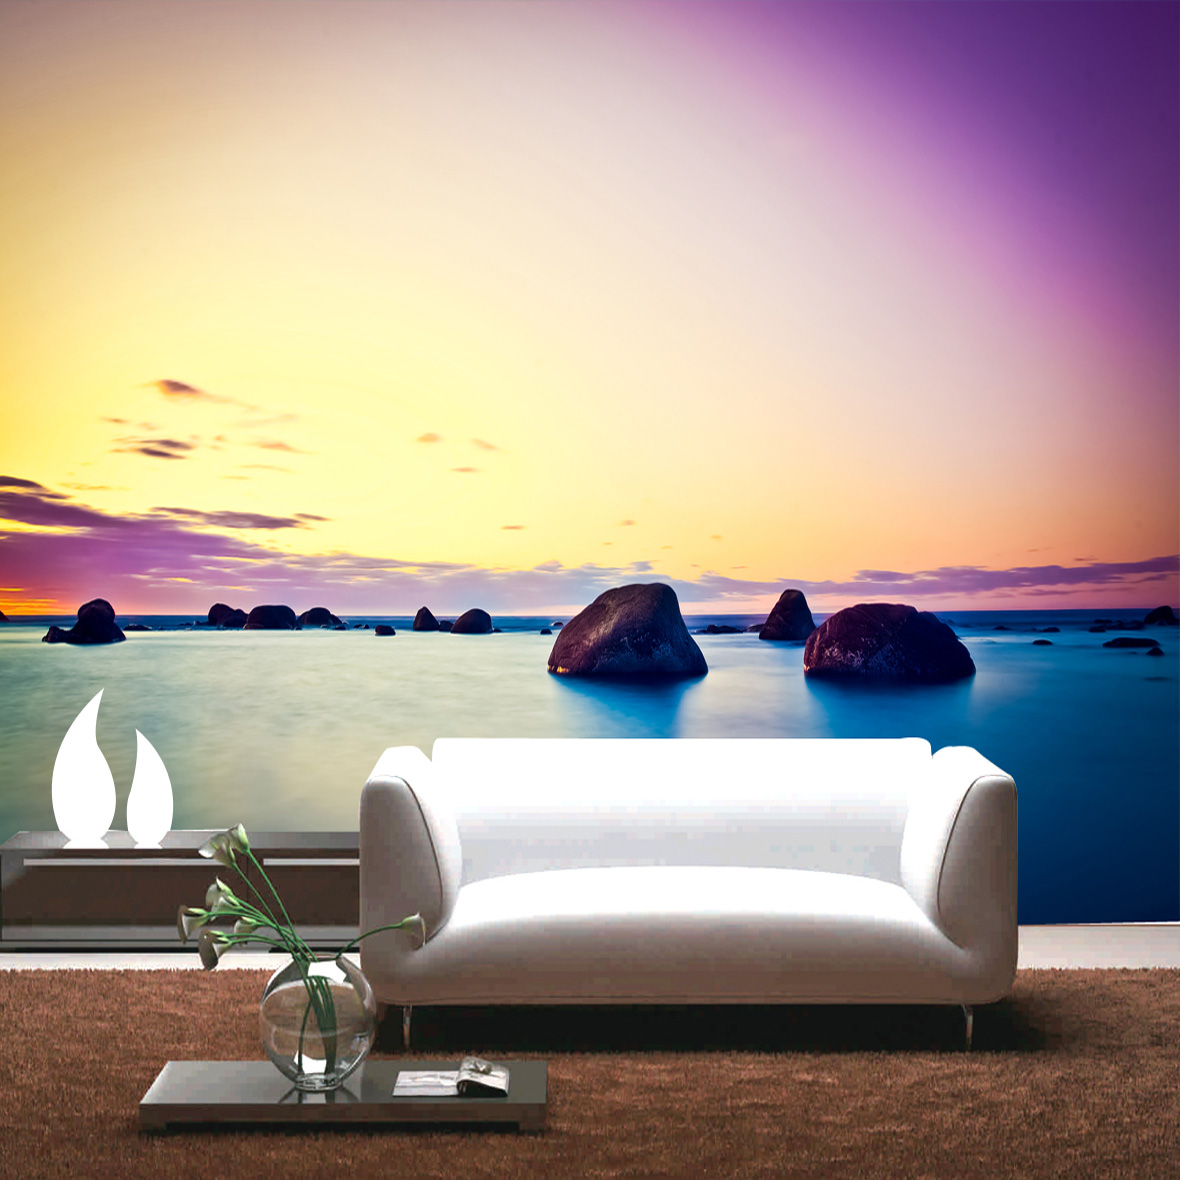 popular ocean sky wall mural buy cheap ocean sky wall mural lots 3d stereoscopic large mural custom wall paper fabric living room sofa bedroom tv background wallpaper ocean